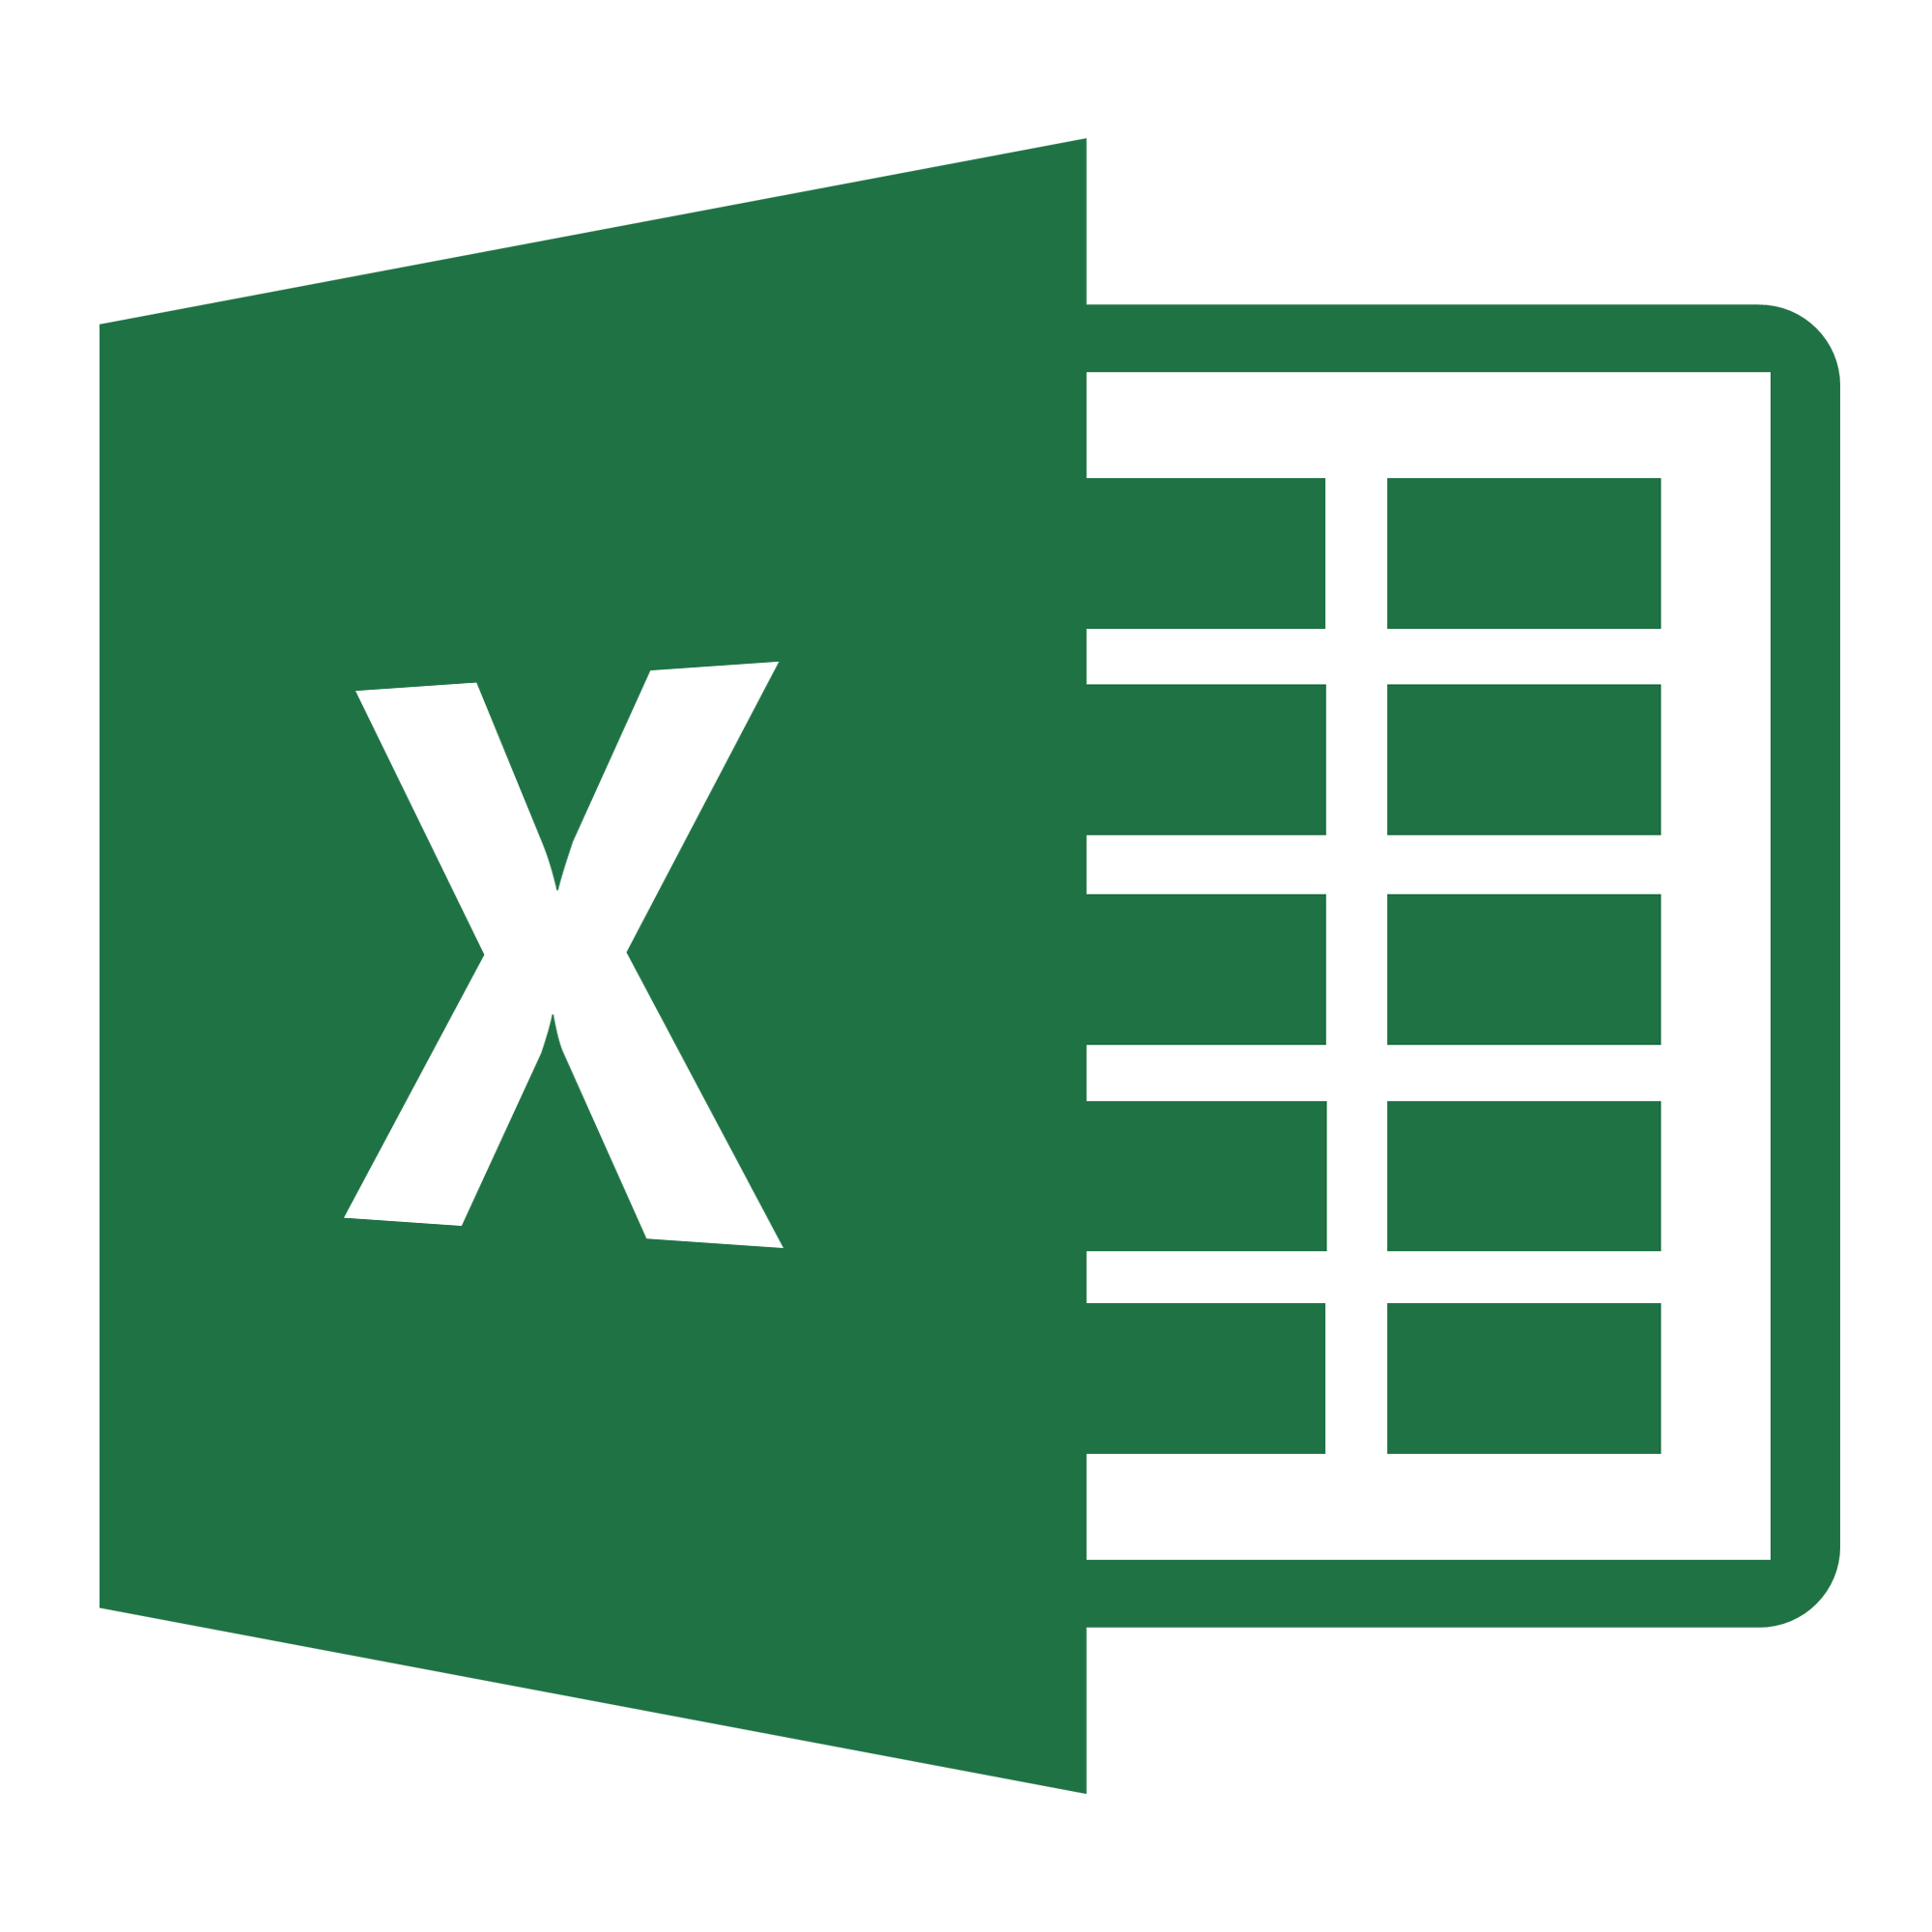 15 Office 2013 Excel CSV Icon Images